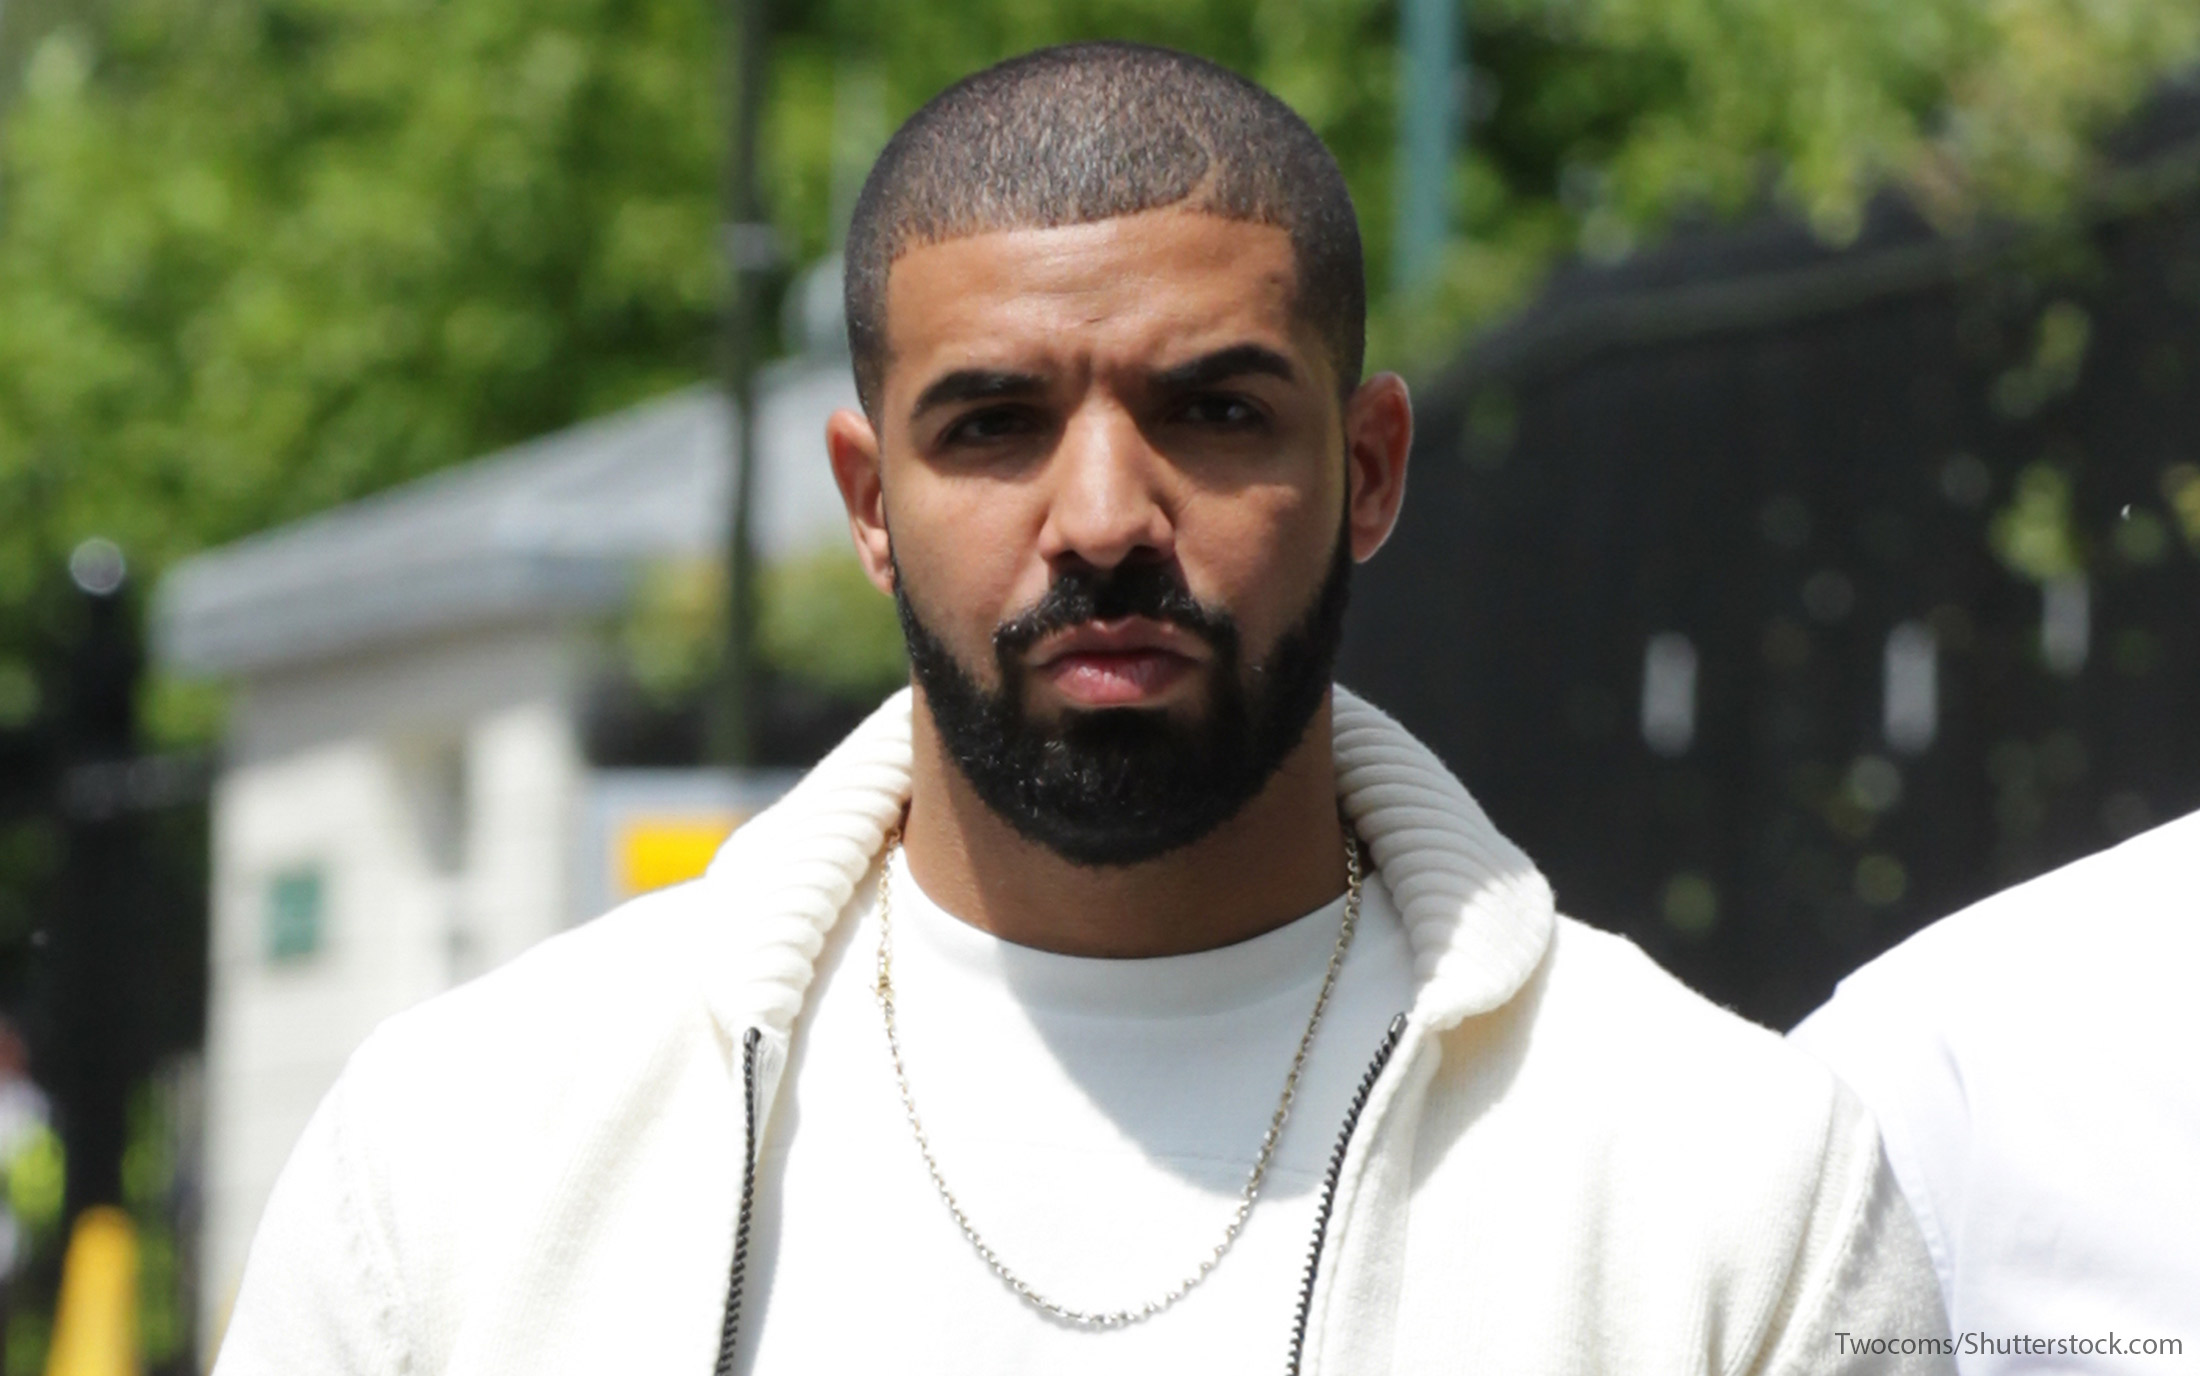 Drake's net worth and tour